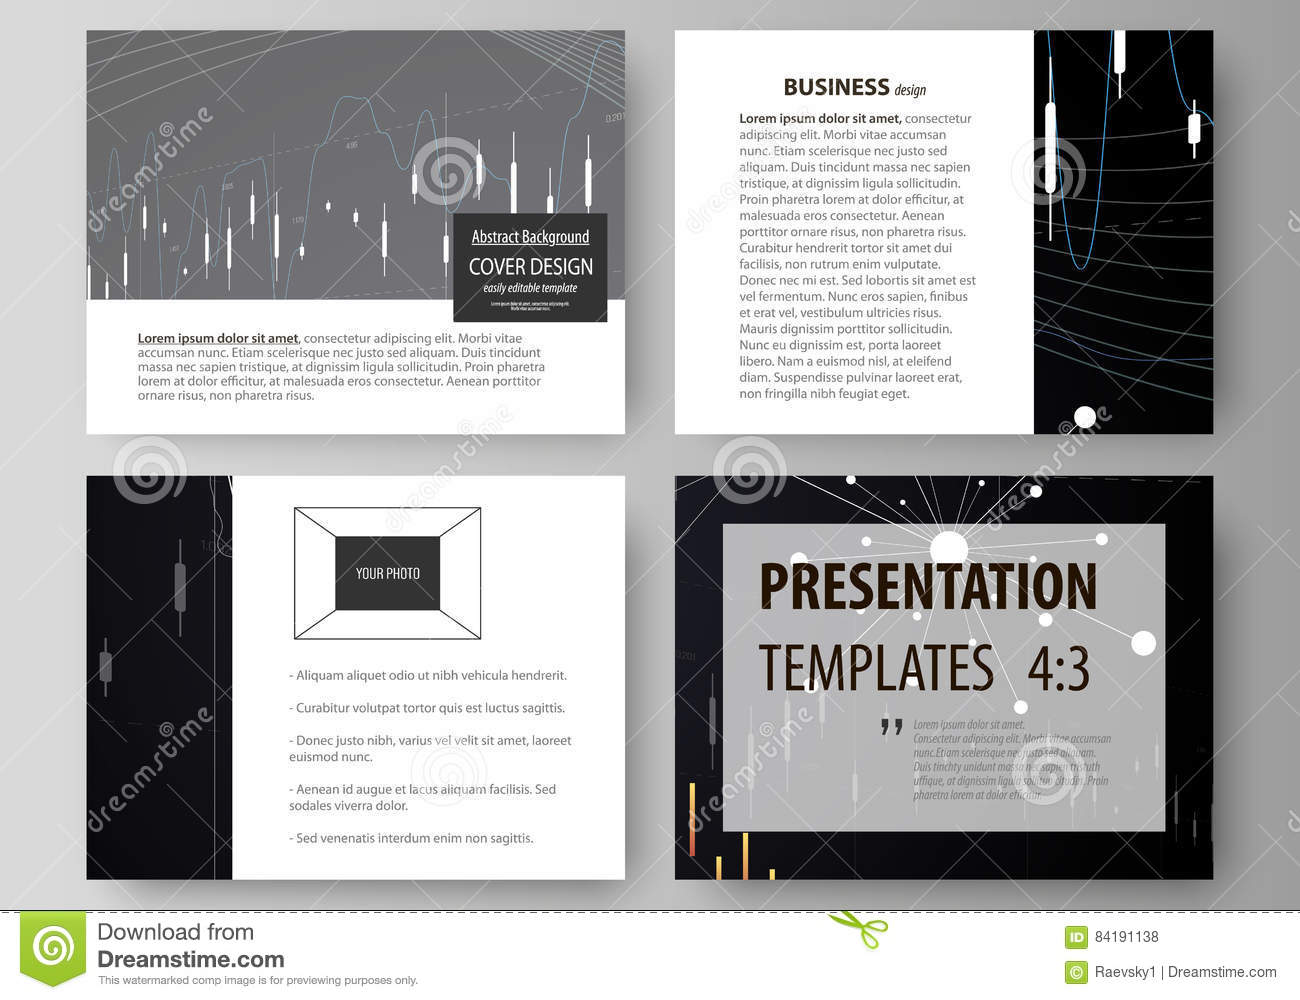 Download Business Templates For Presentation Slides Vector Layouts Abstract Infographic Background In Minimalist Design